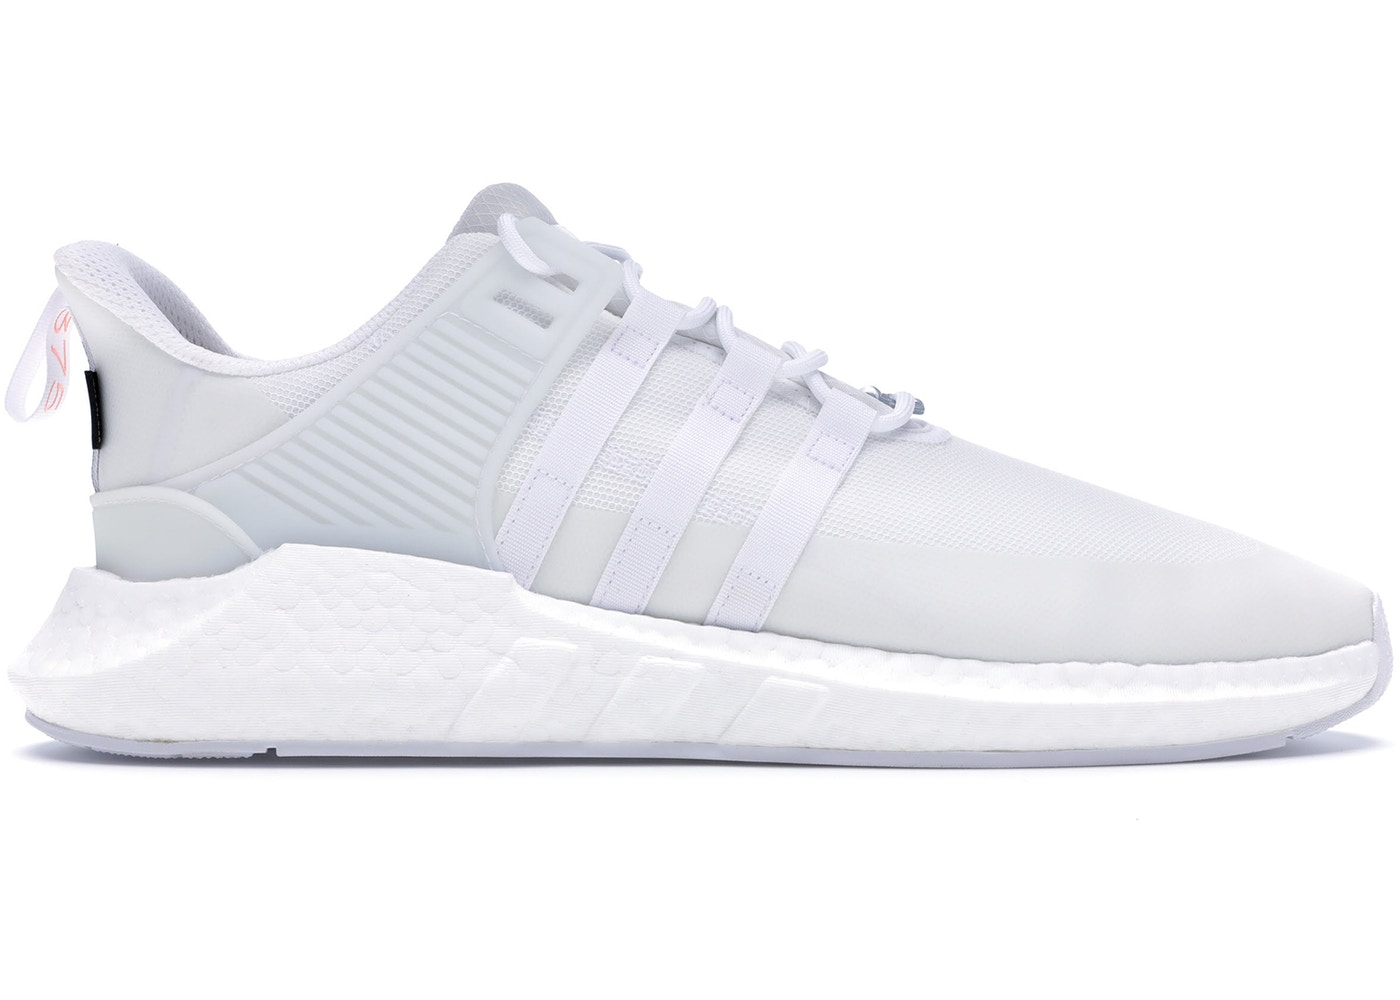 new product 9067a 59b34 adidas EQT Support 93/17 Gore-tex Reflect & Protect (White)